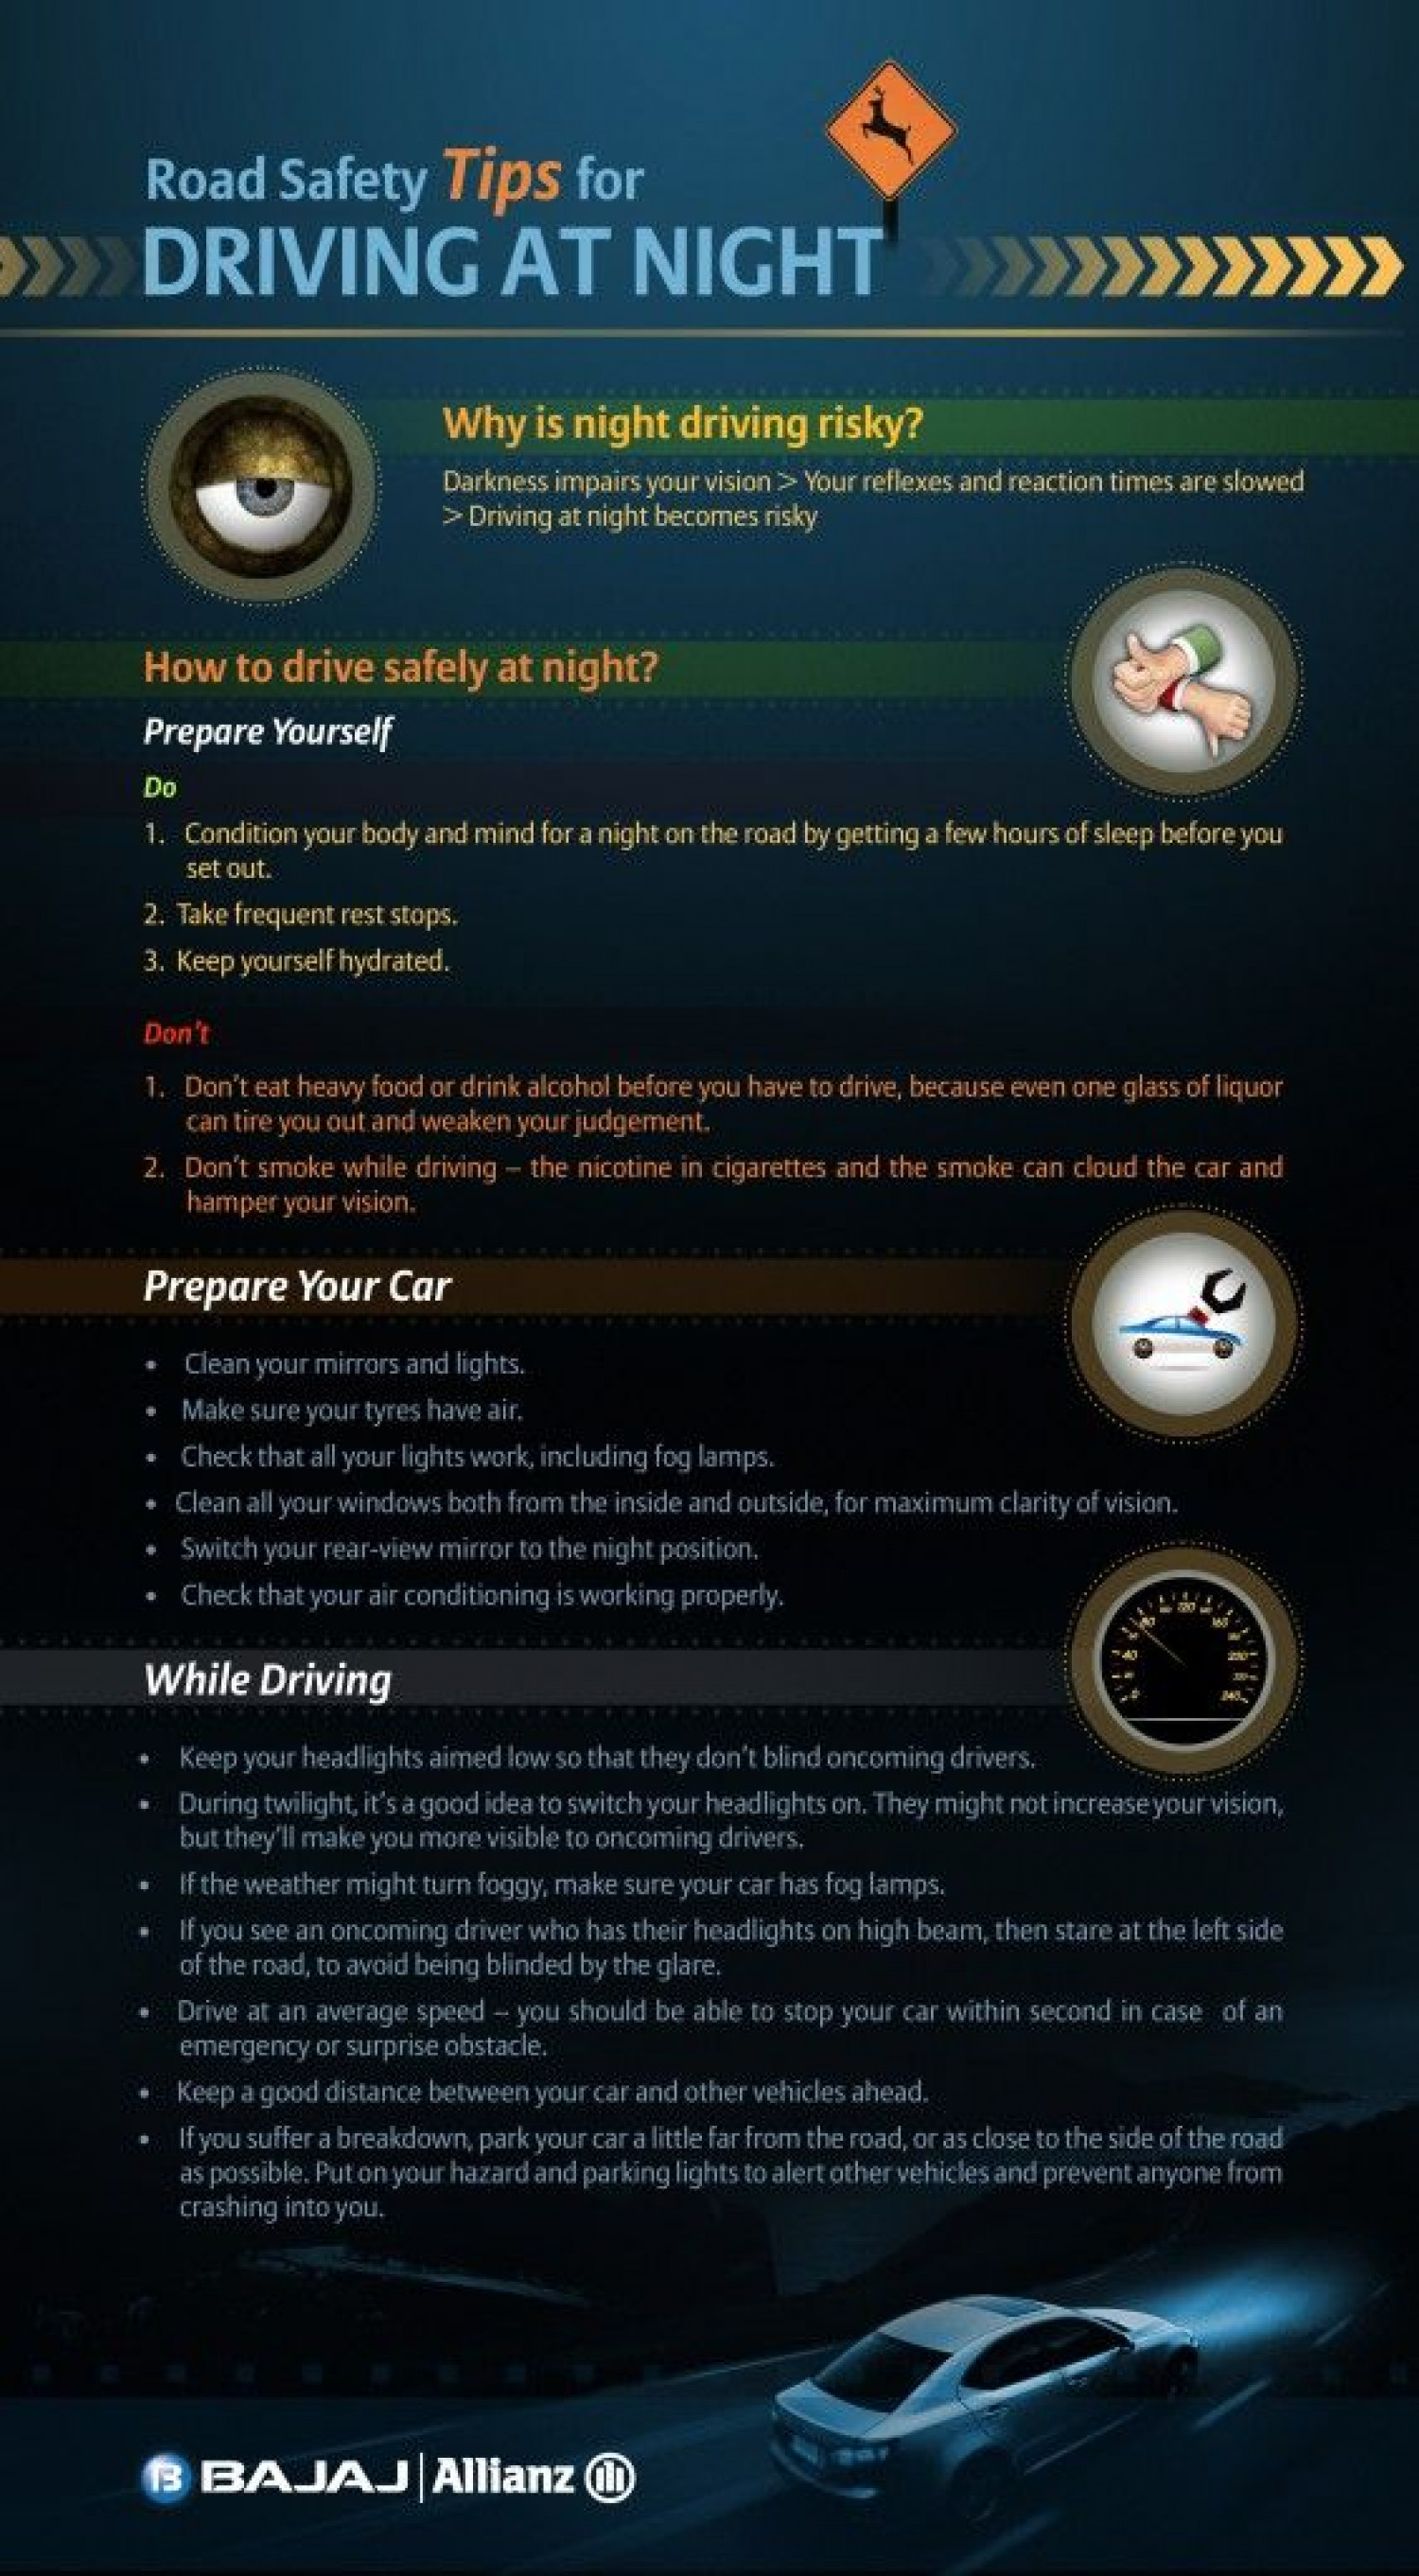 Road Safety – Tips for Driving at Night Infographic